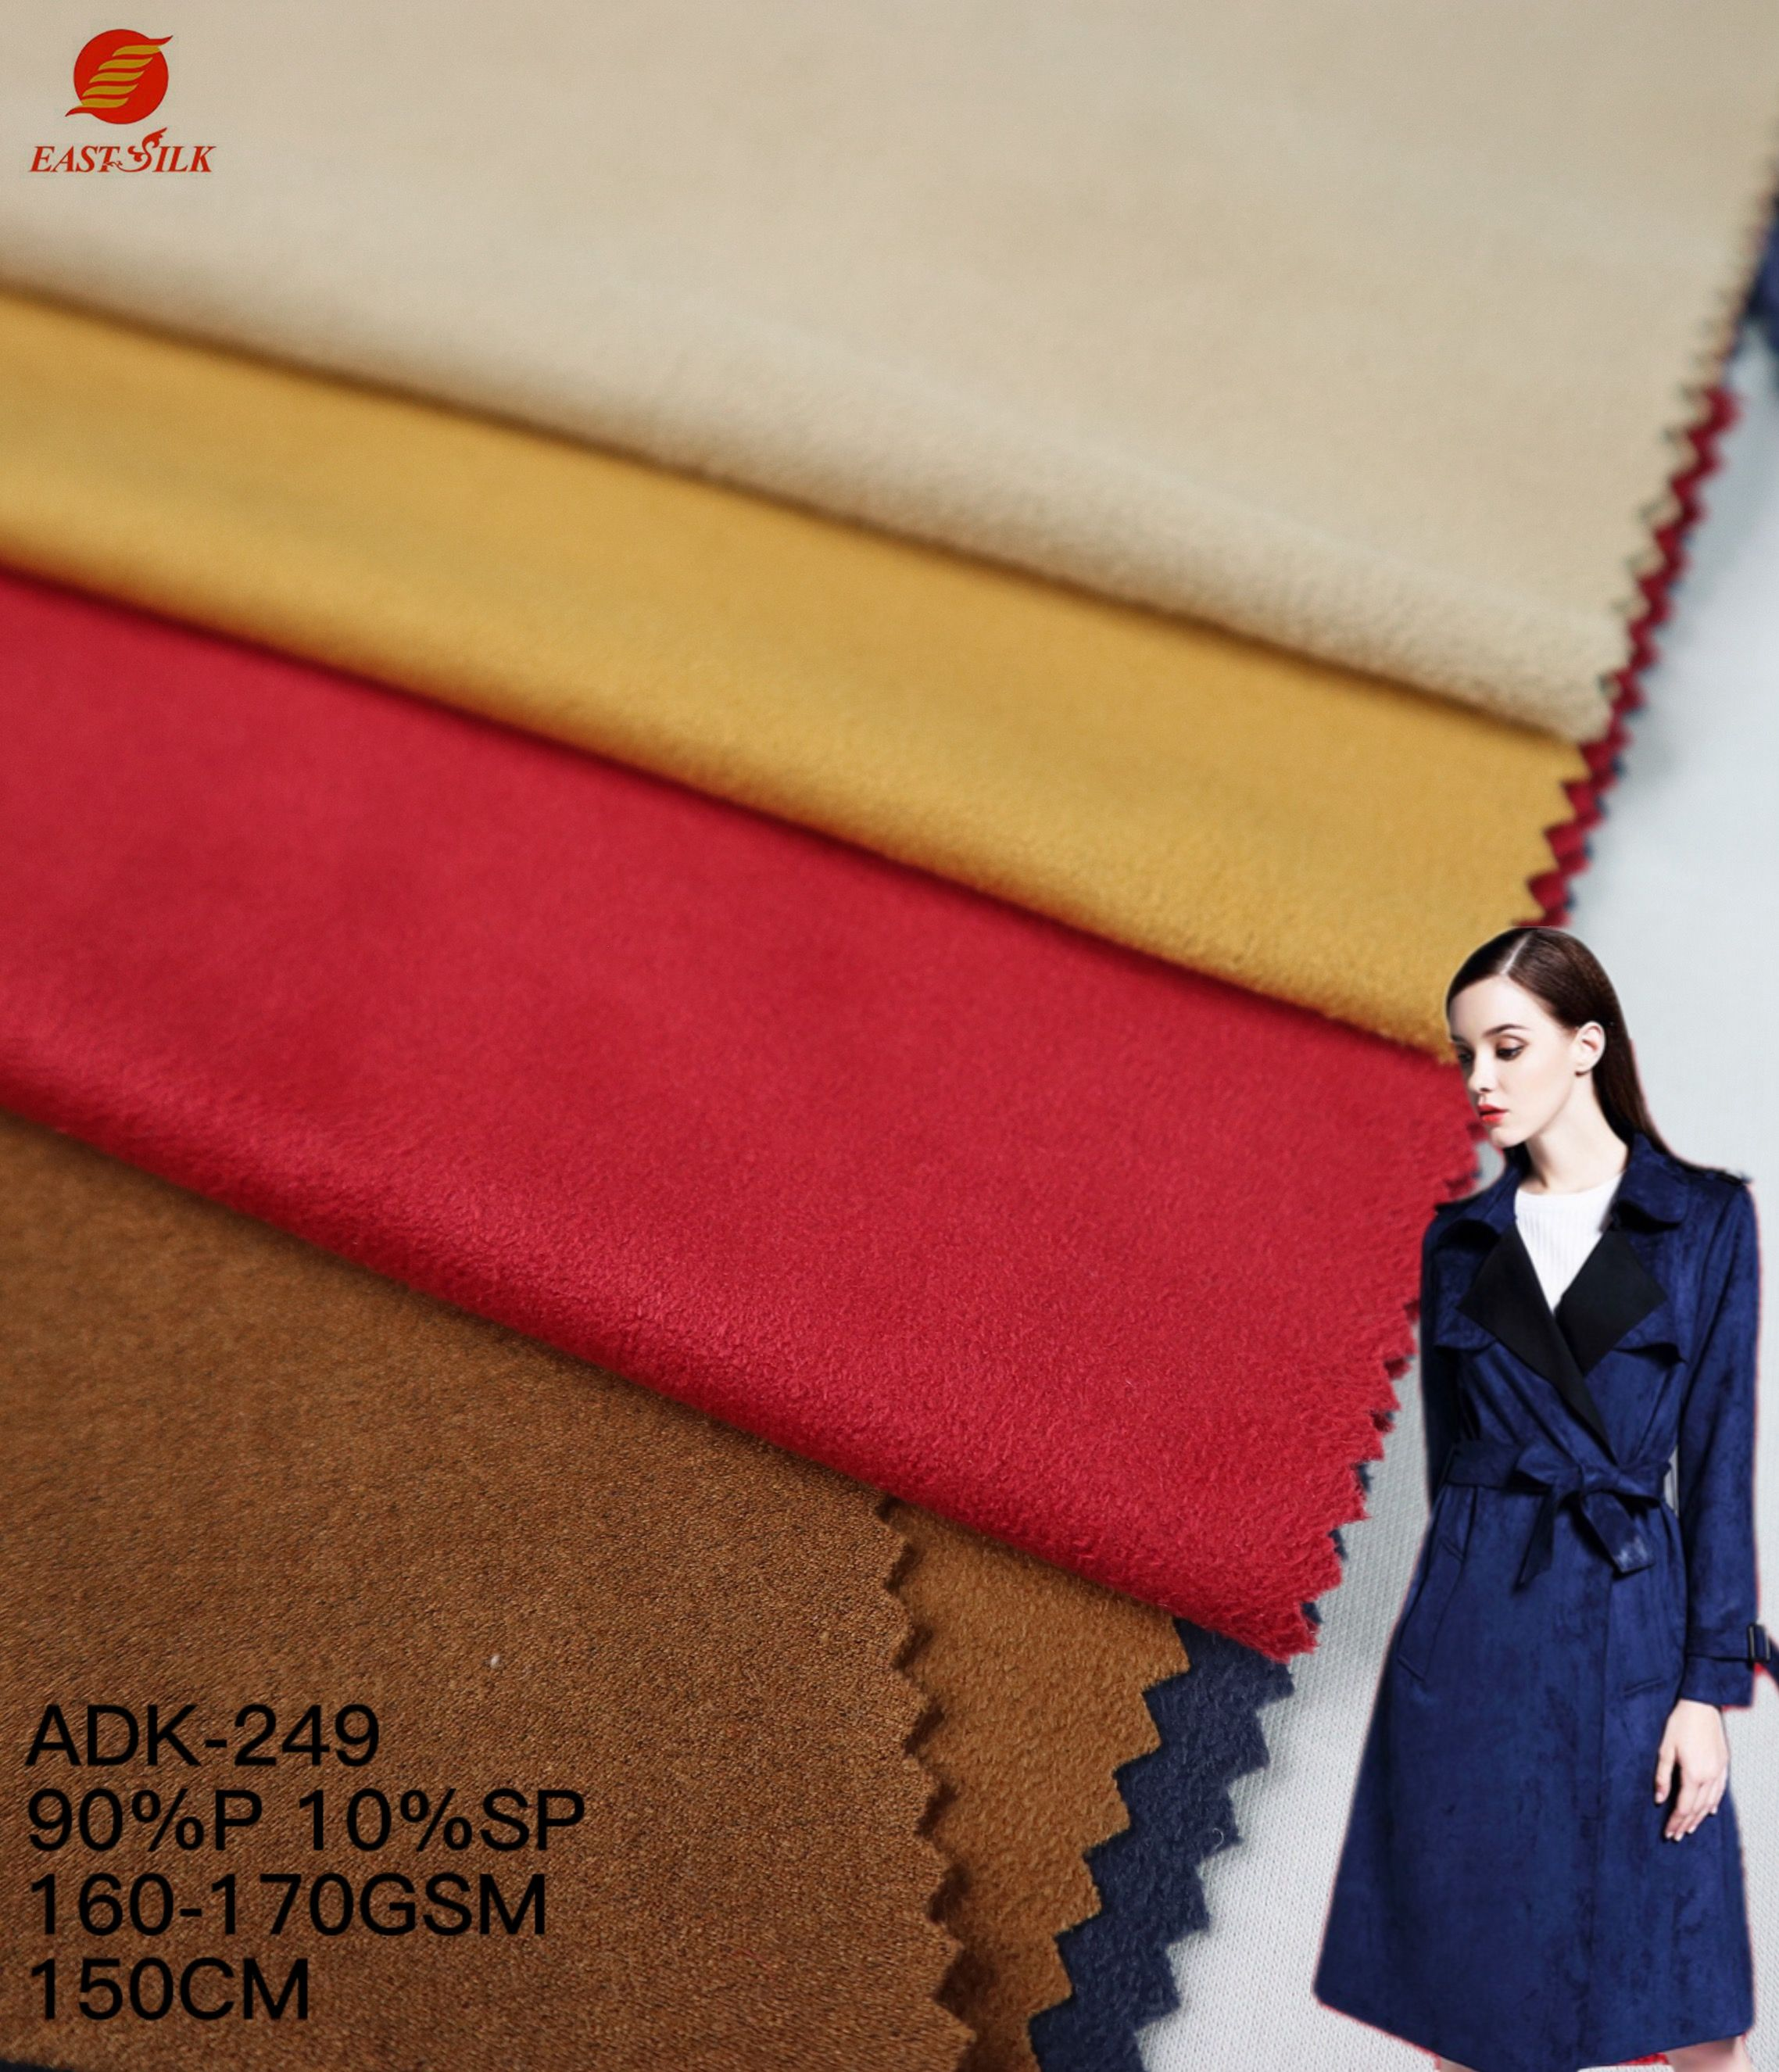 Fabrics Textile Fabric Best Textiles Single Face Stretch Knitted Sueded Jersey Polyester Suede Fabric